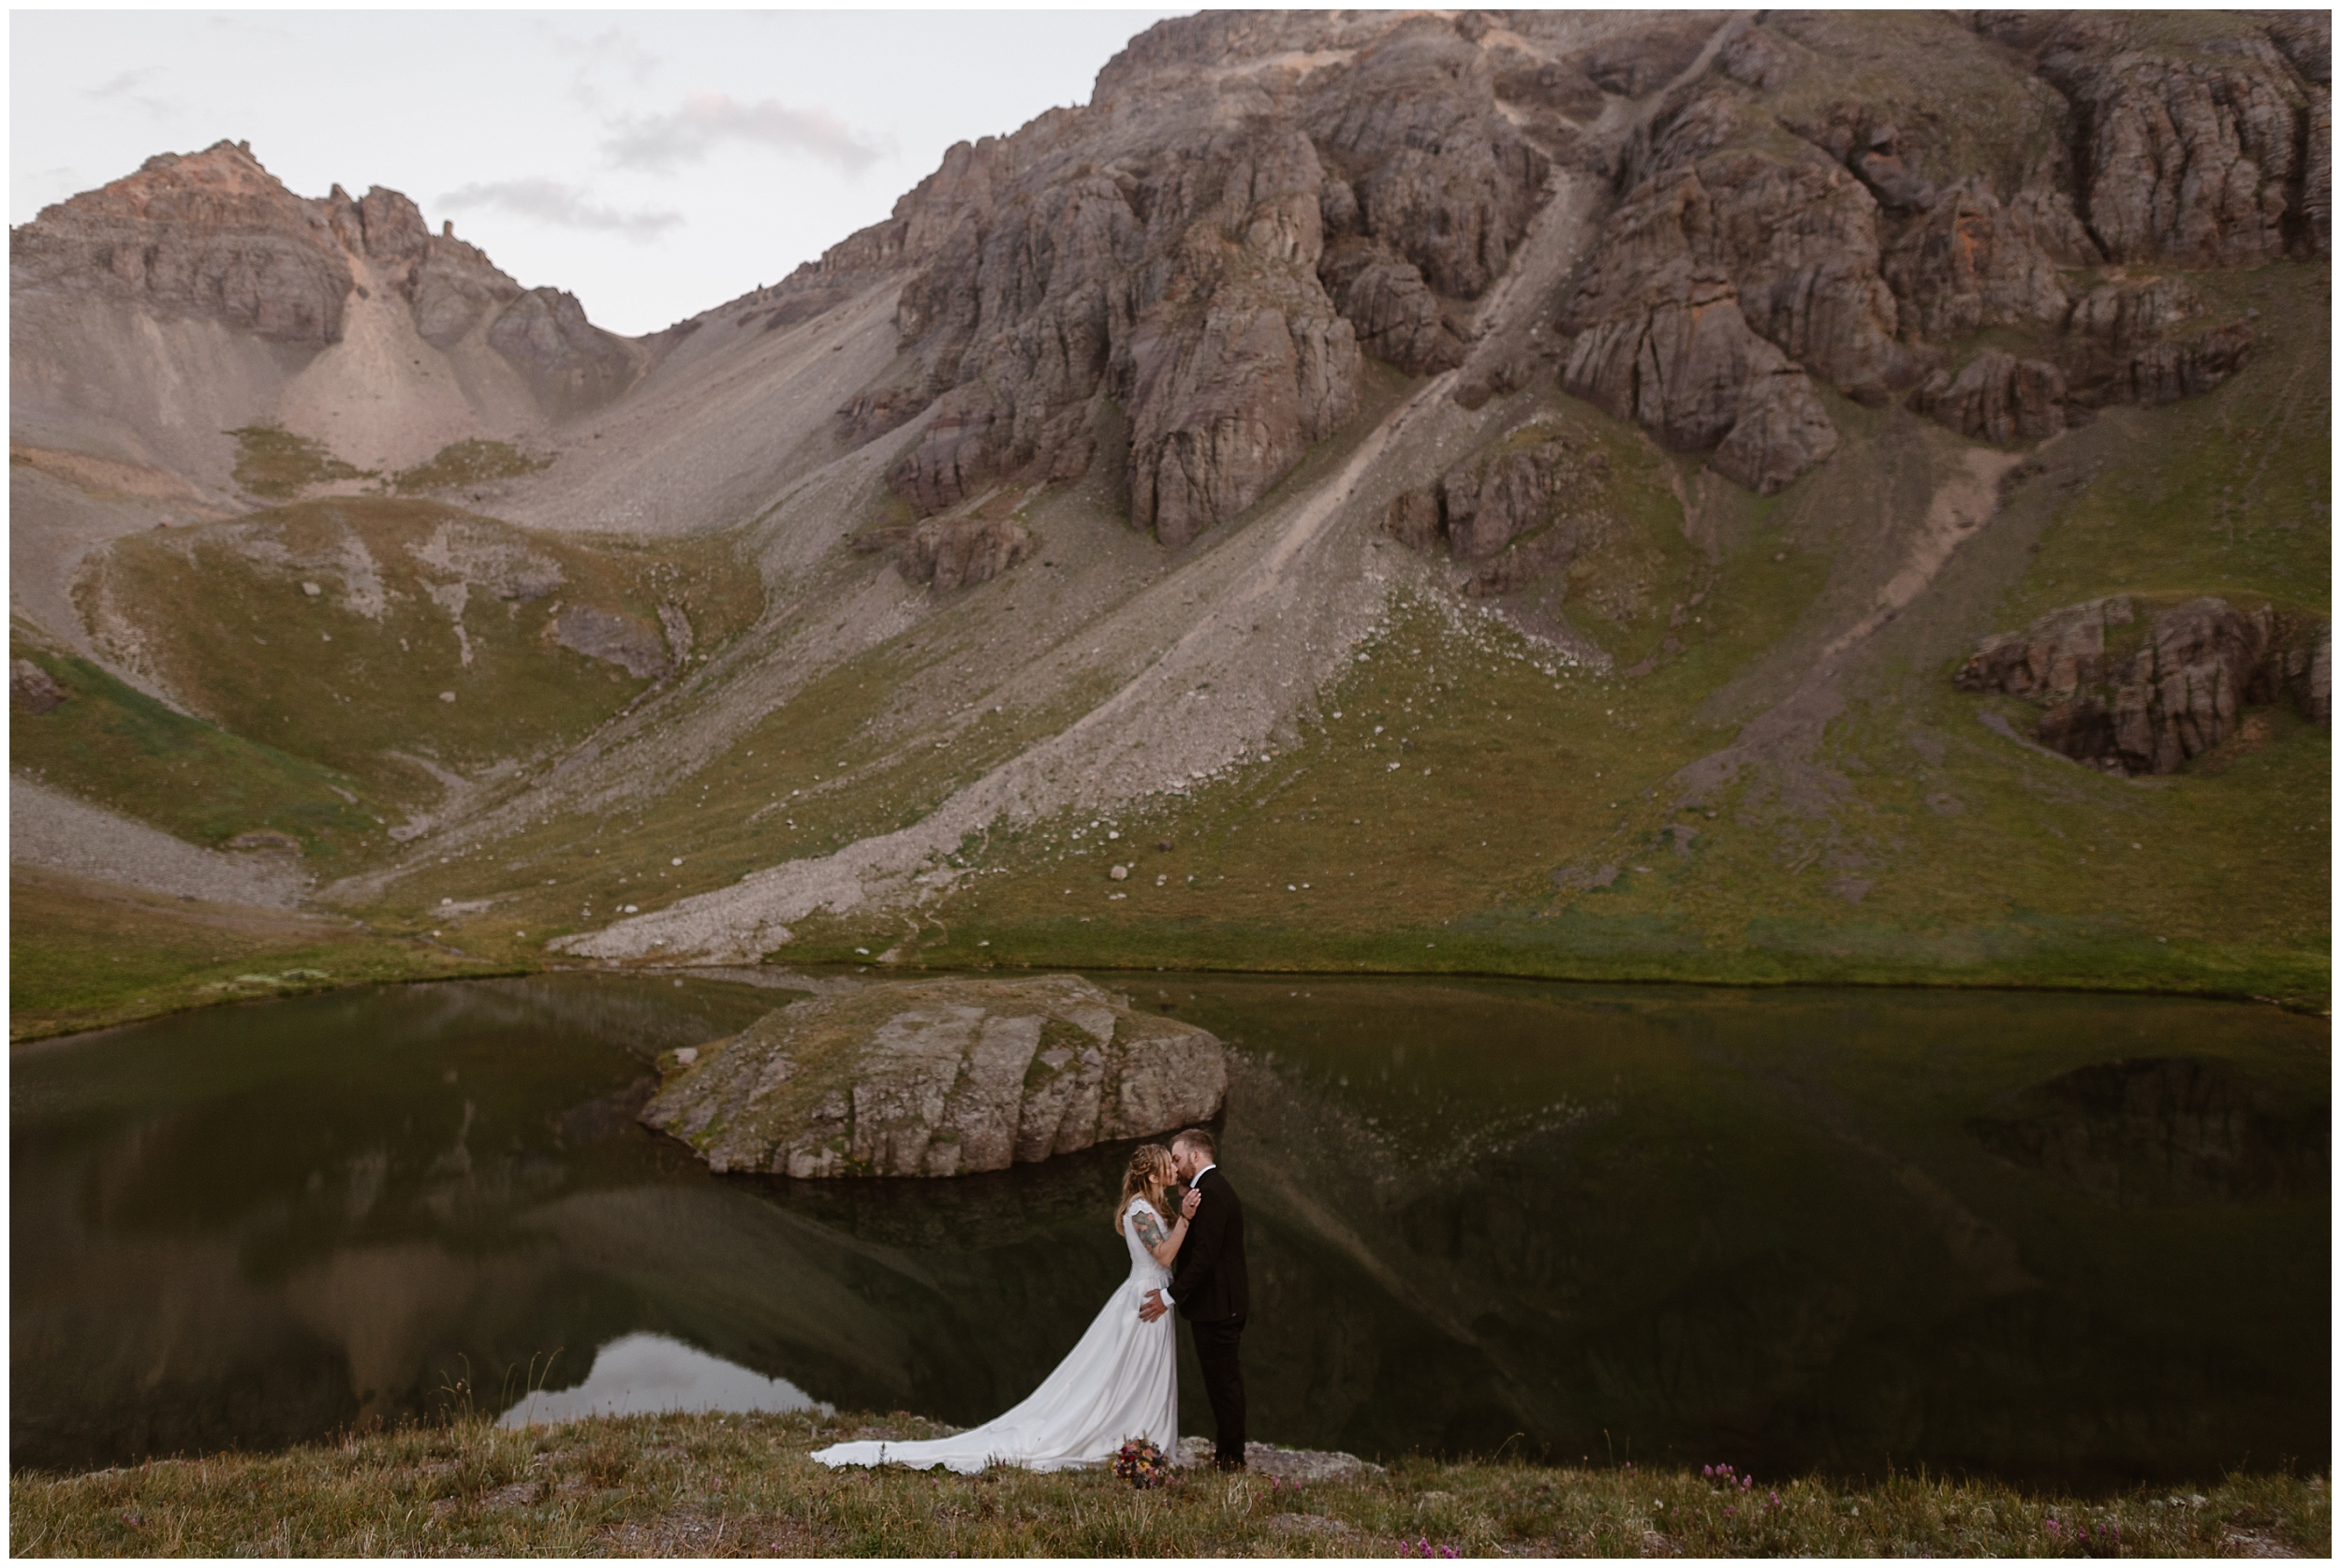 Standing in front of a deep blue alpine lake, Brecka and Nick, the bride and groom, embrace and share their first kiss as a couple. Hiking on your elopement day is one of hte best elopement ideas for adventurous couples who want a destination elopement.